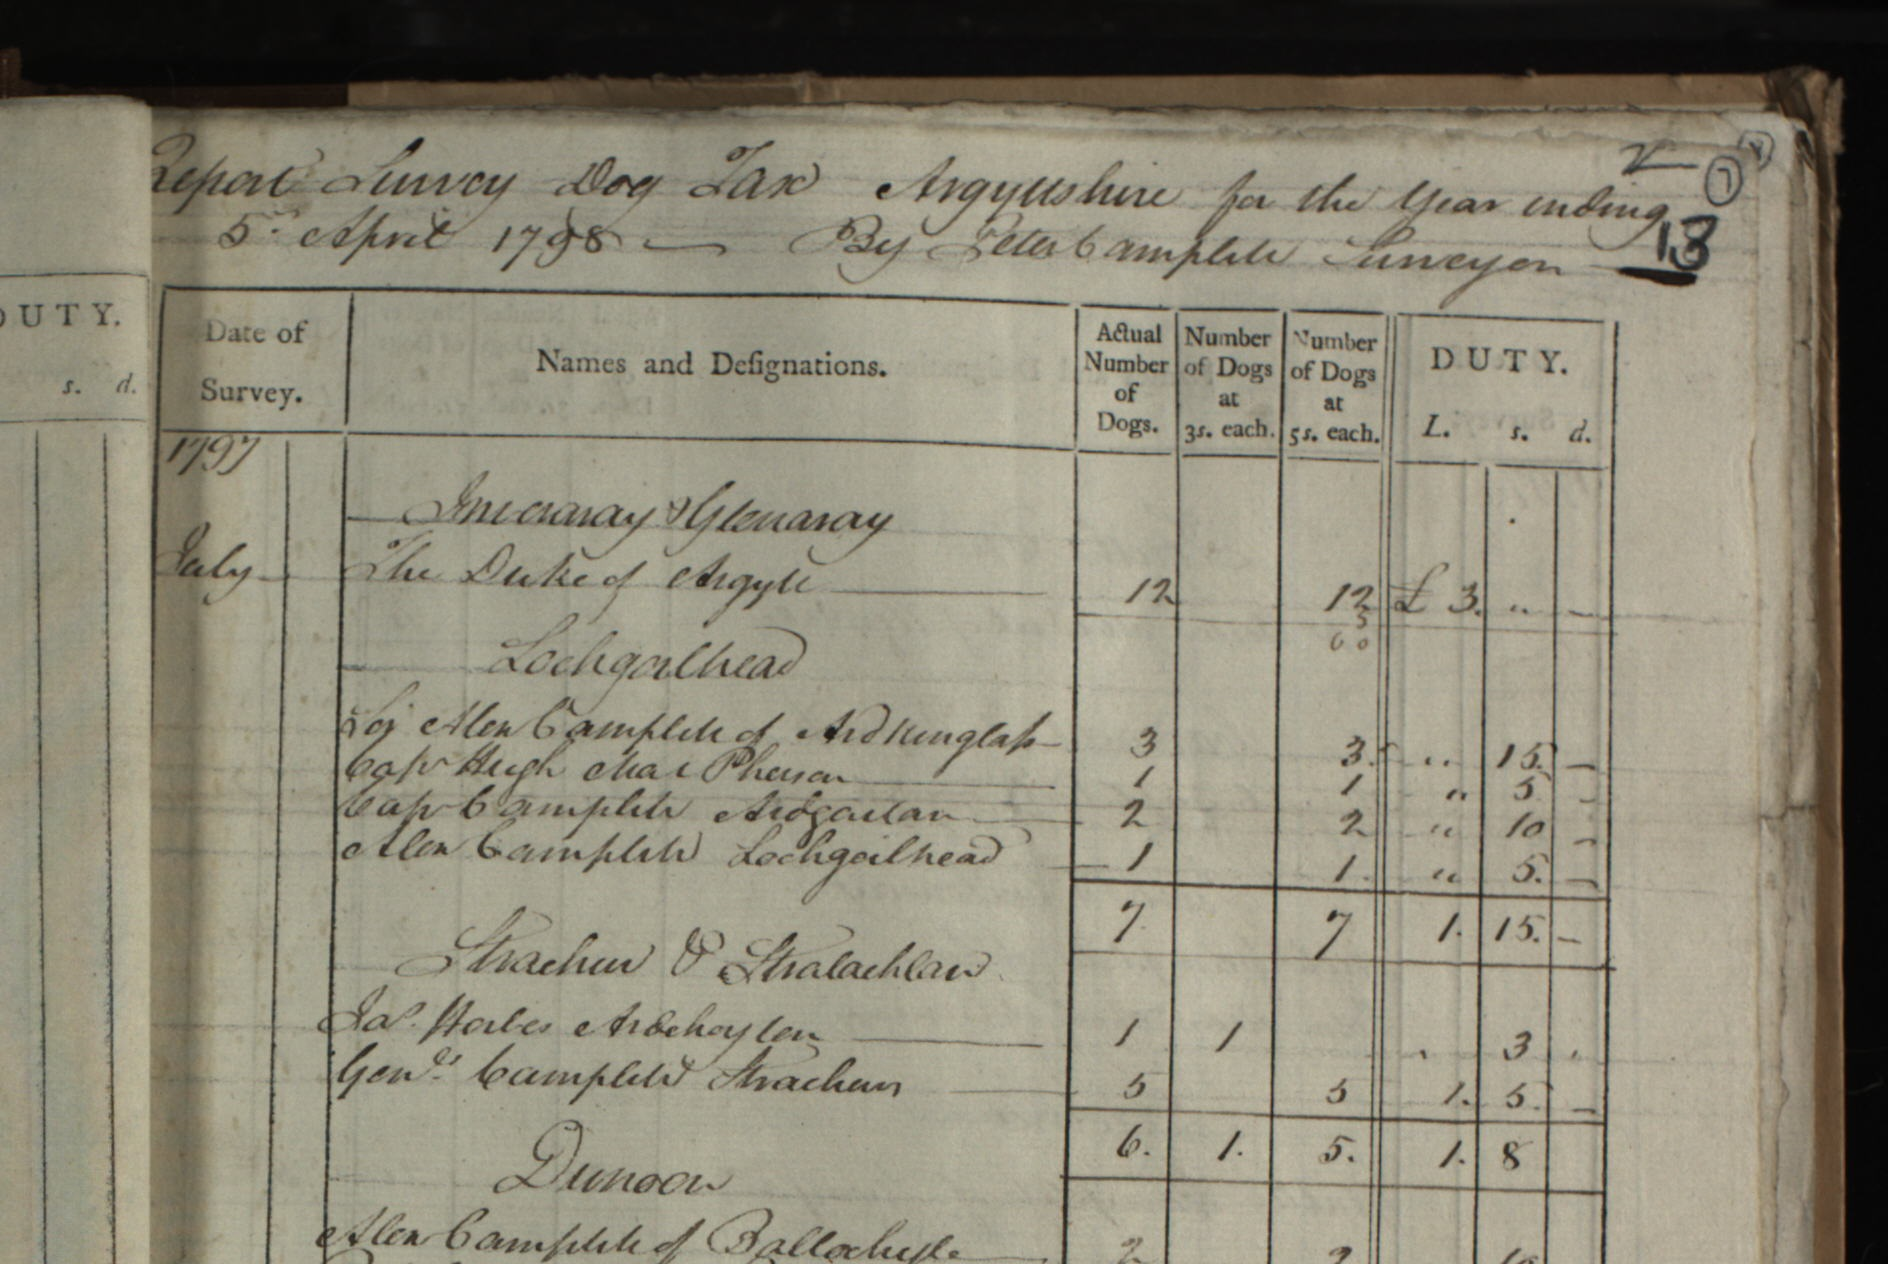 An old page from the Survey Dog Tax record